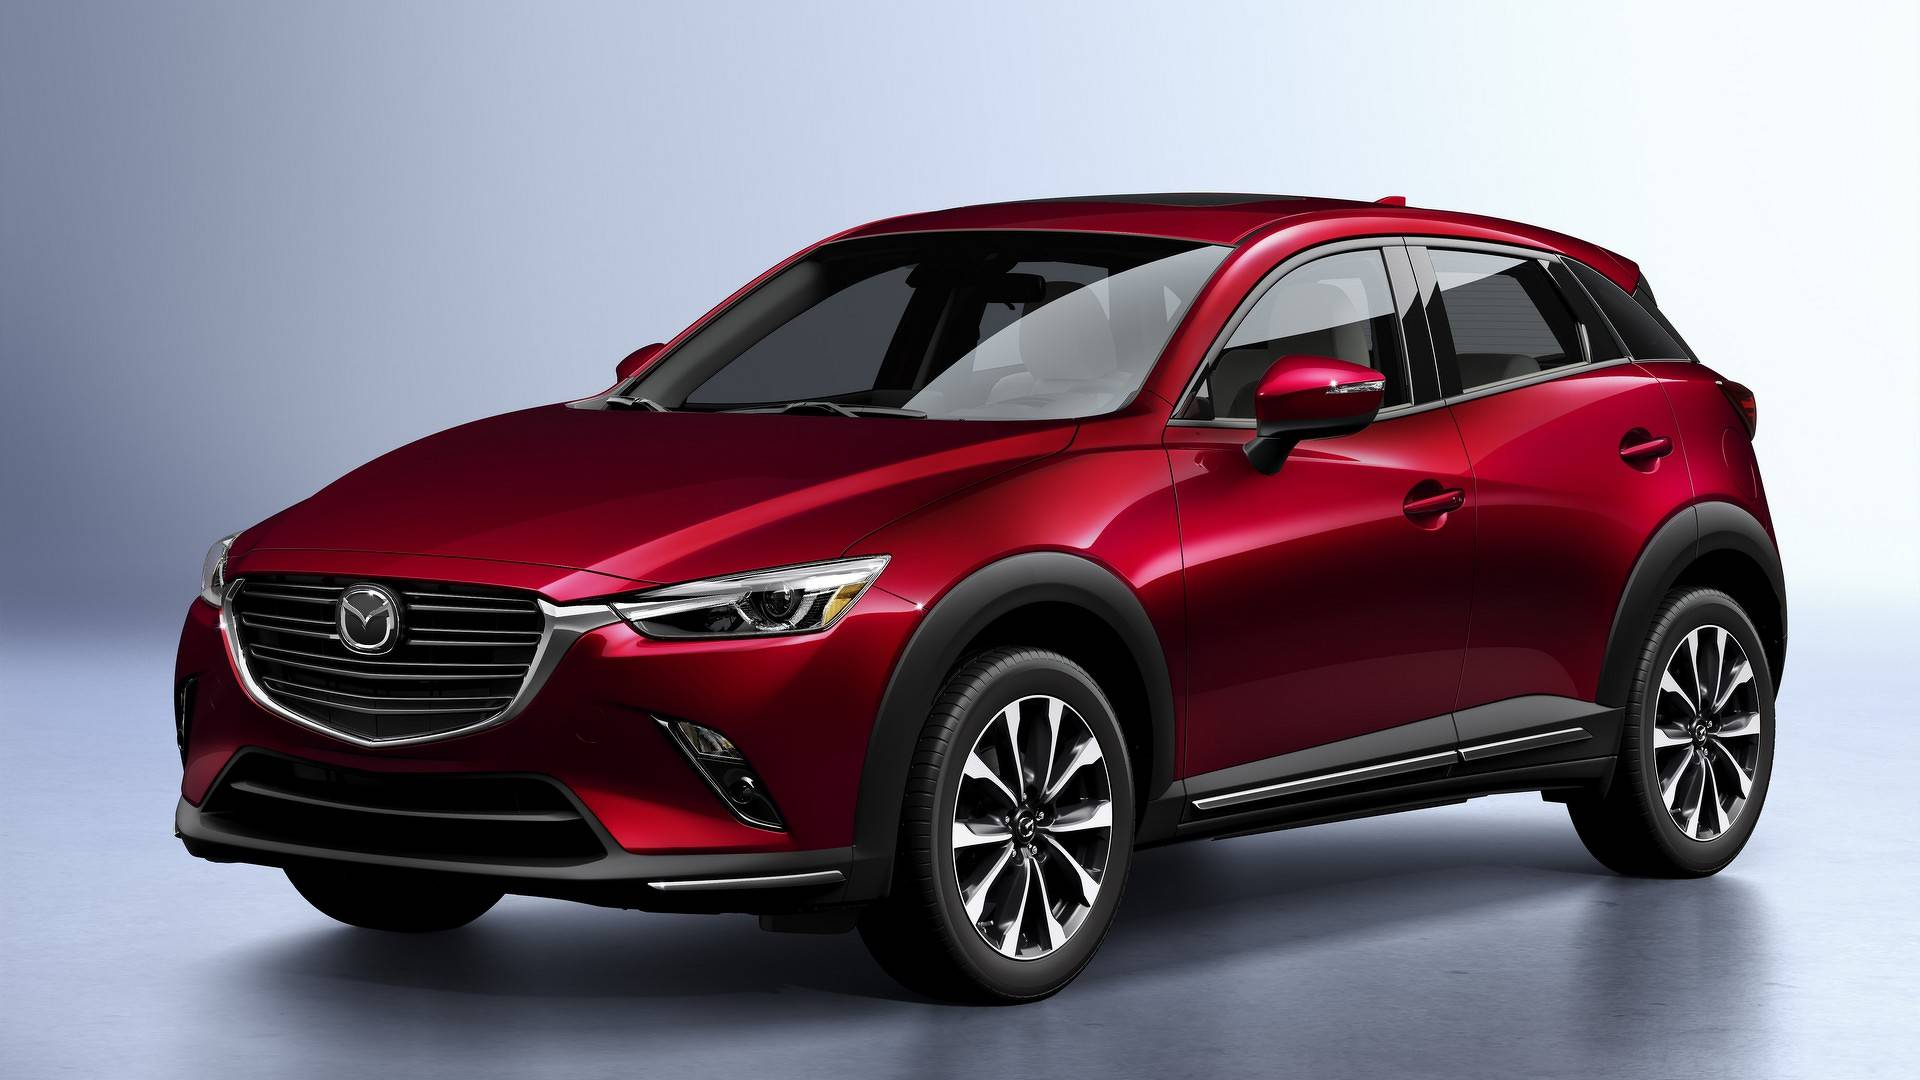 21 The Best 2020 Mazda Cx 3 Release